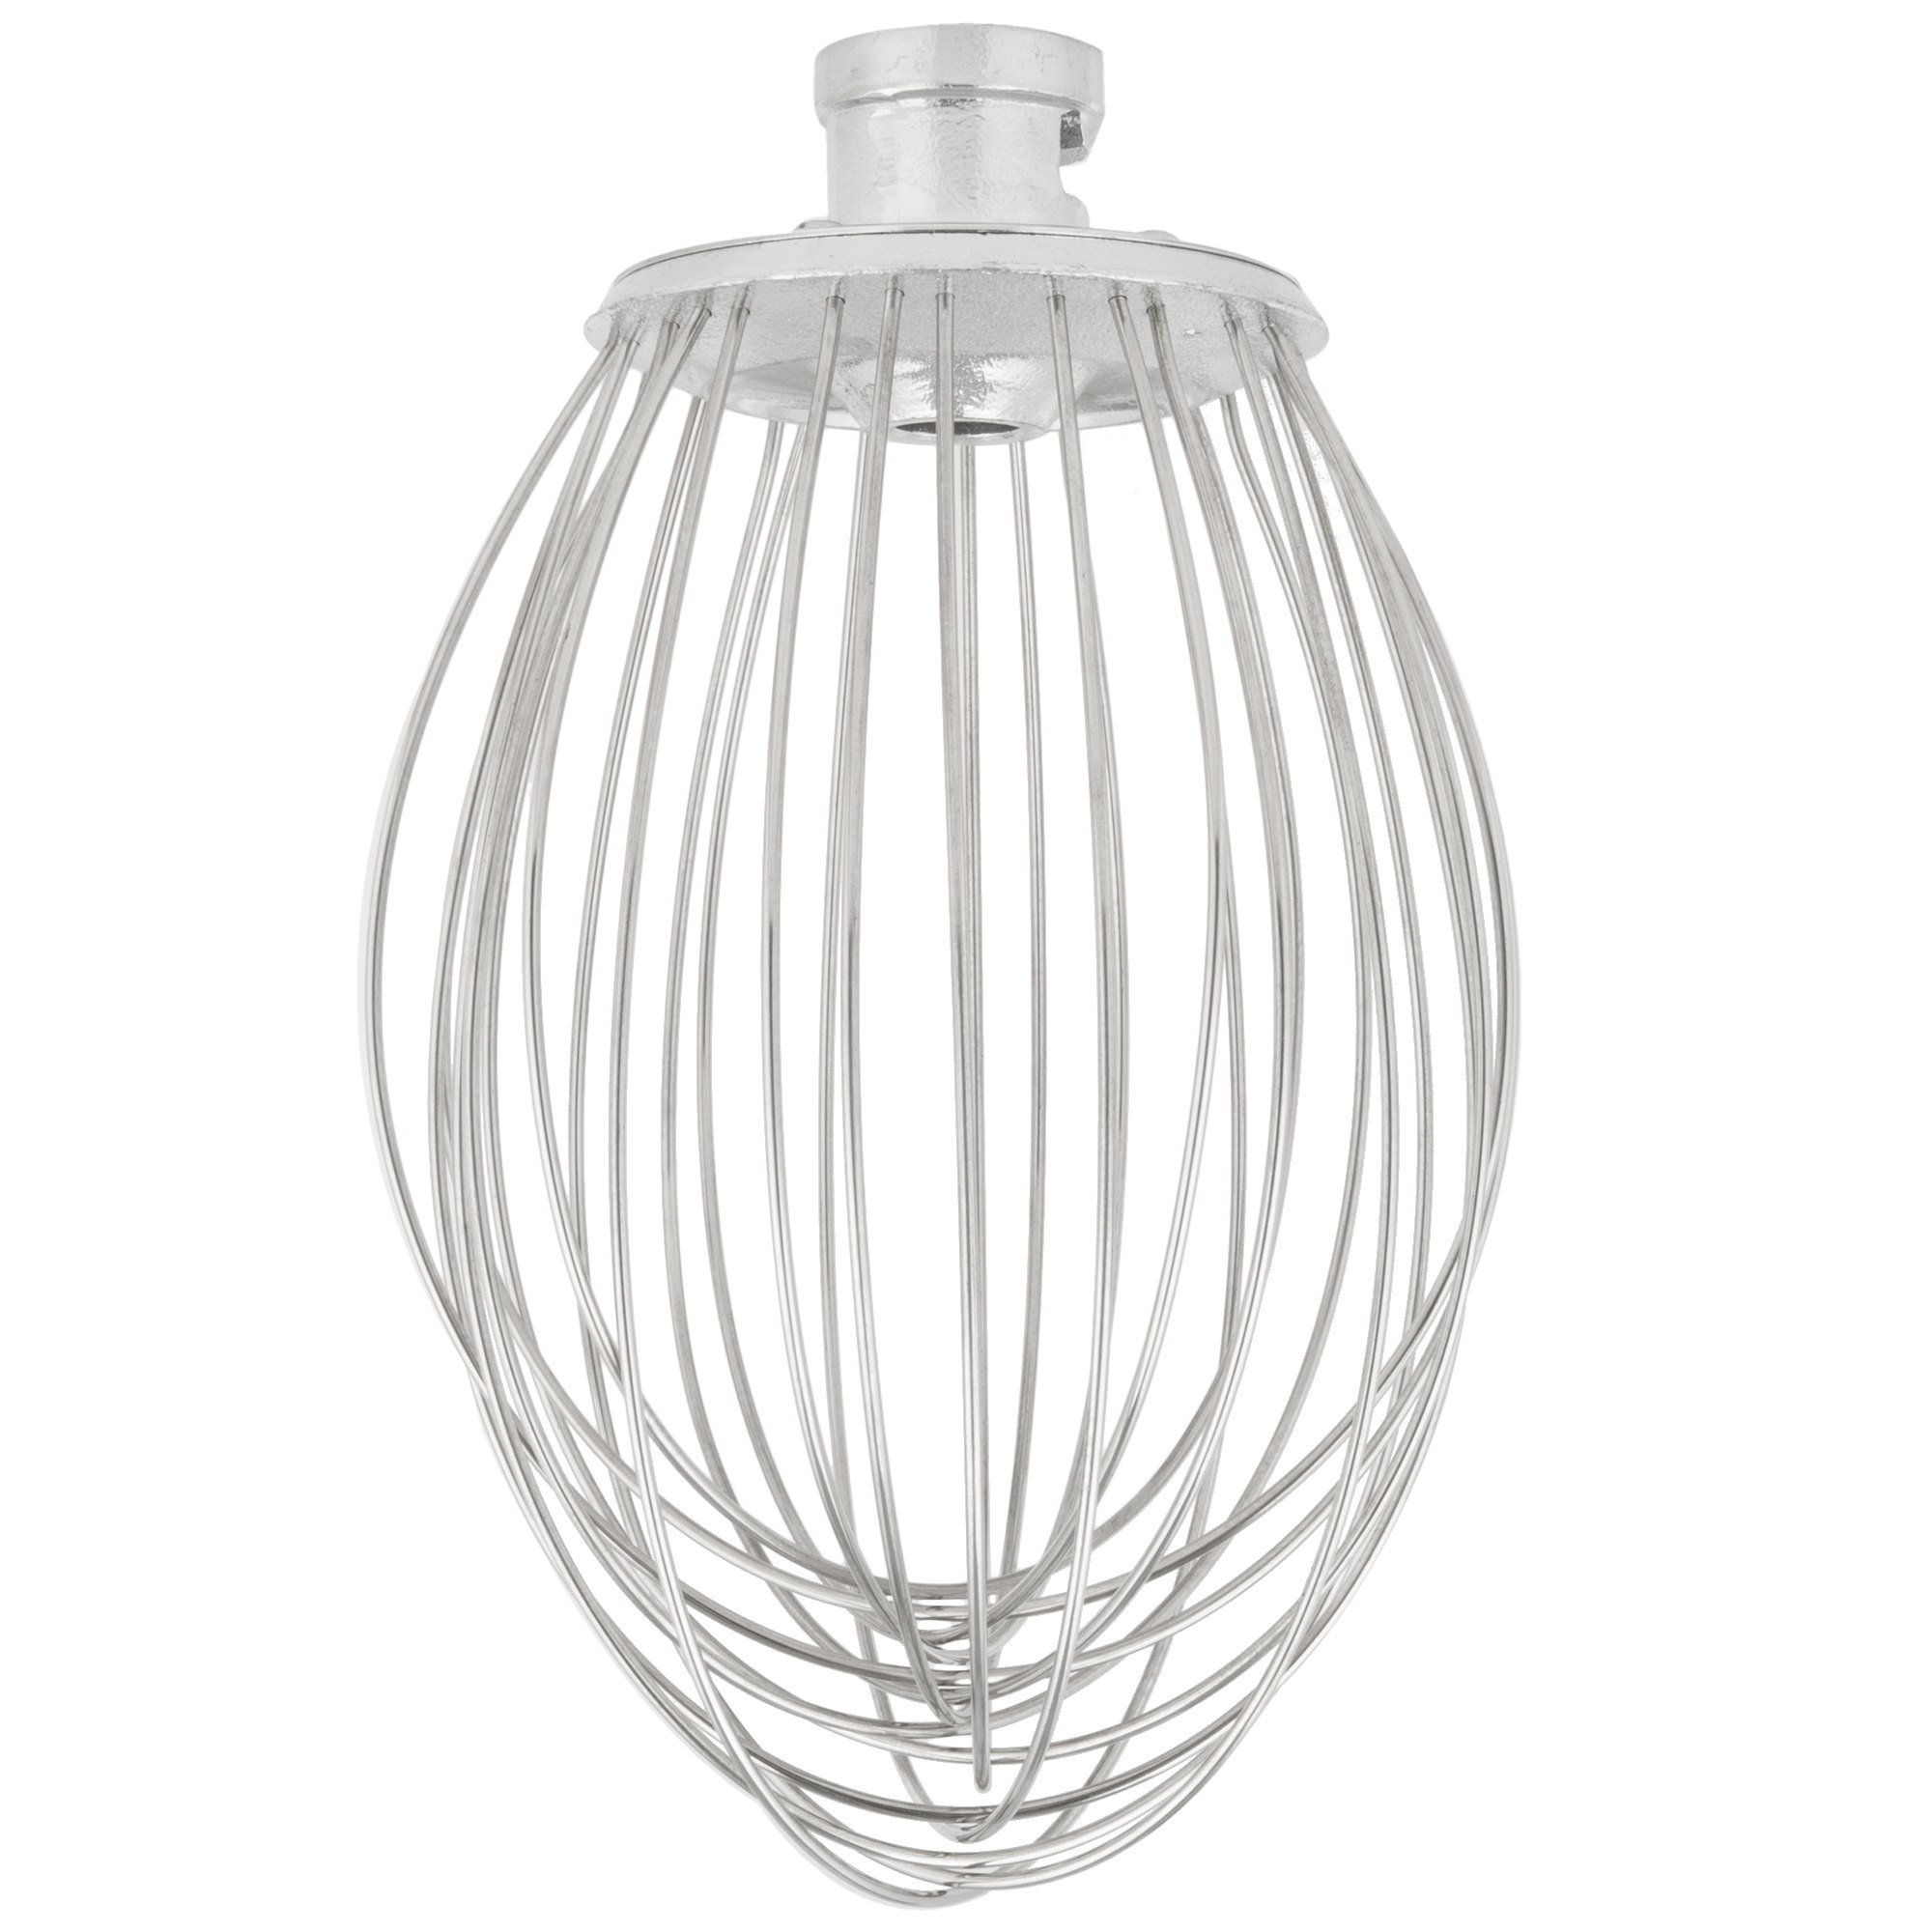 Hobart Equivalent Classic Stainless Steel Wire Whip for 20 Qt. Bowls